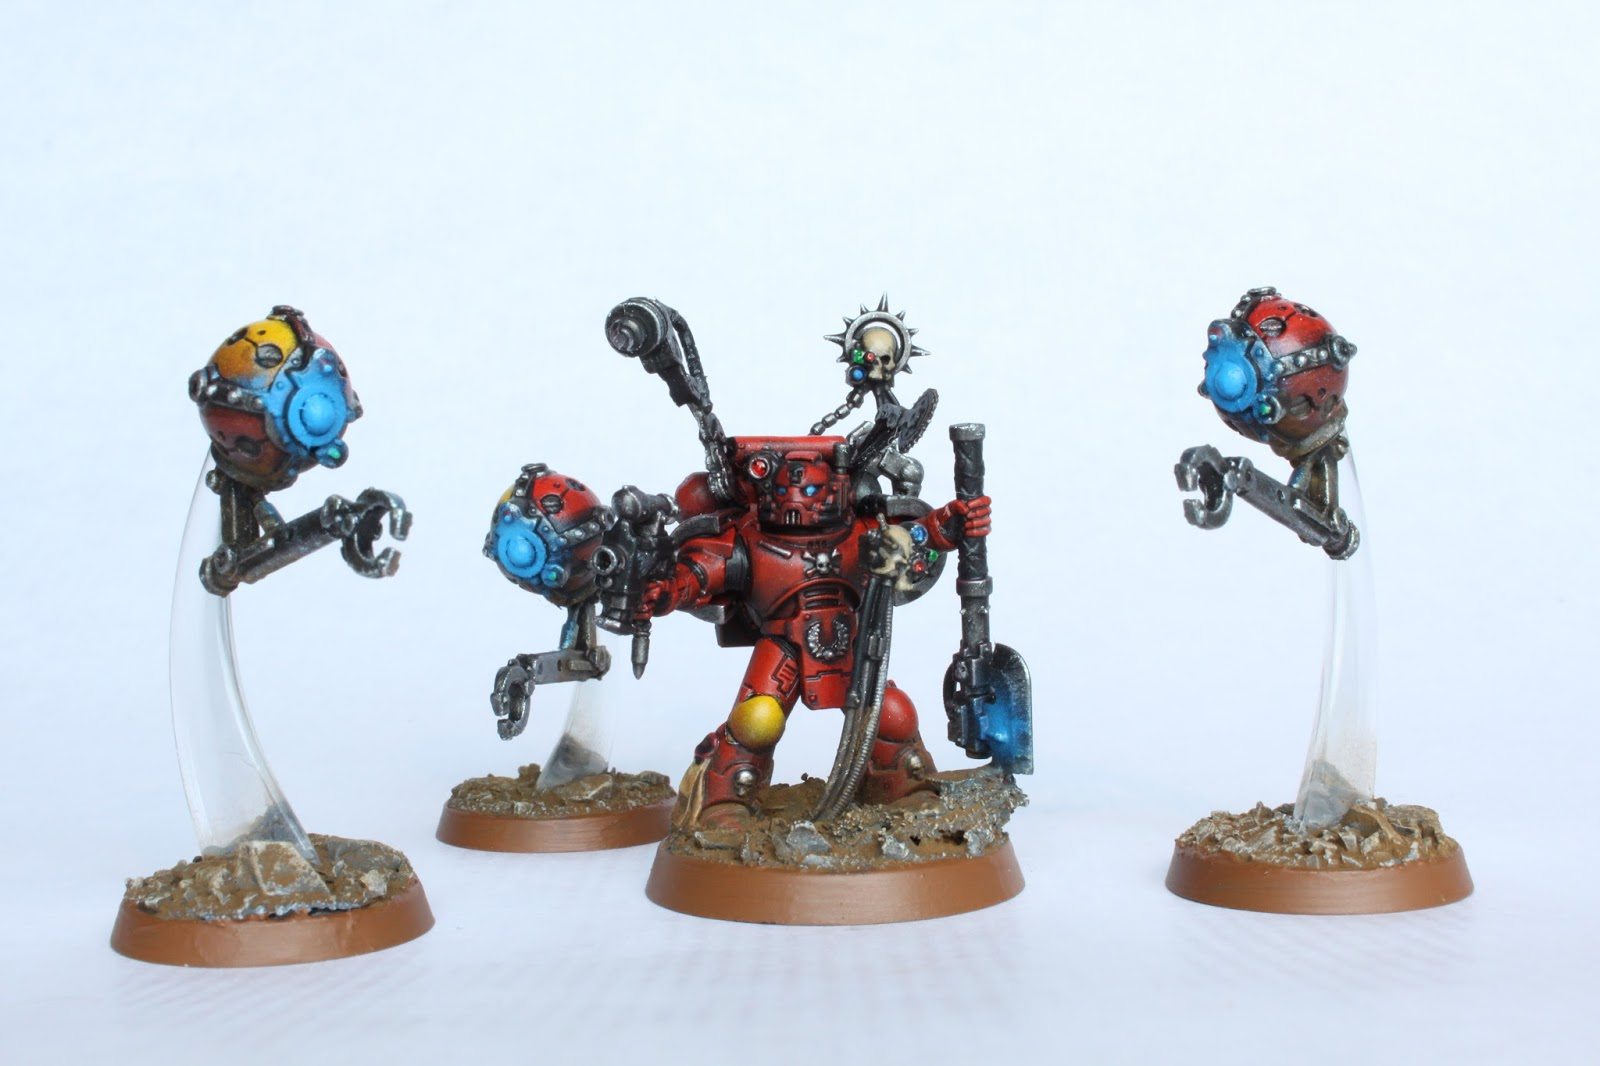 And Since I Already Had Parts For My Techmarine Decided To Use These Instead Of Buying A Servitors From Game Workshop